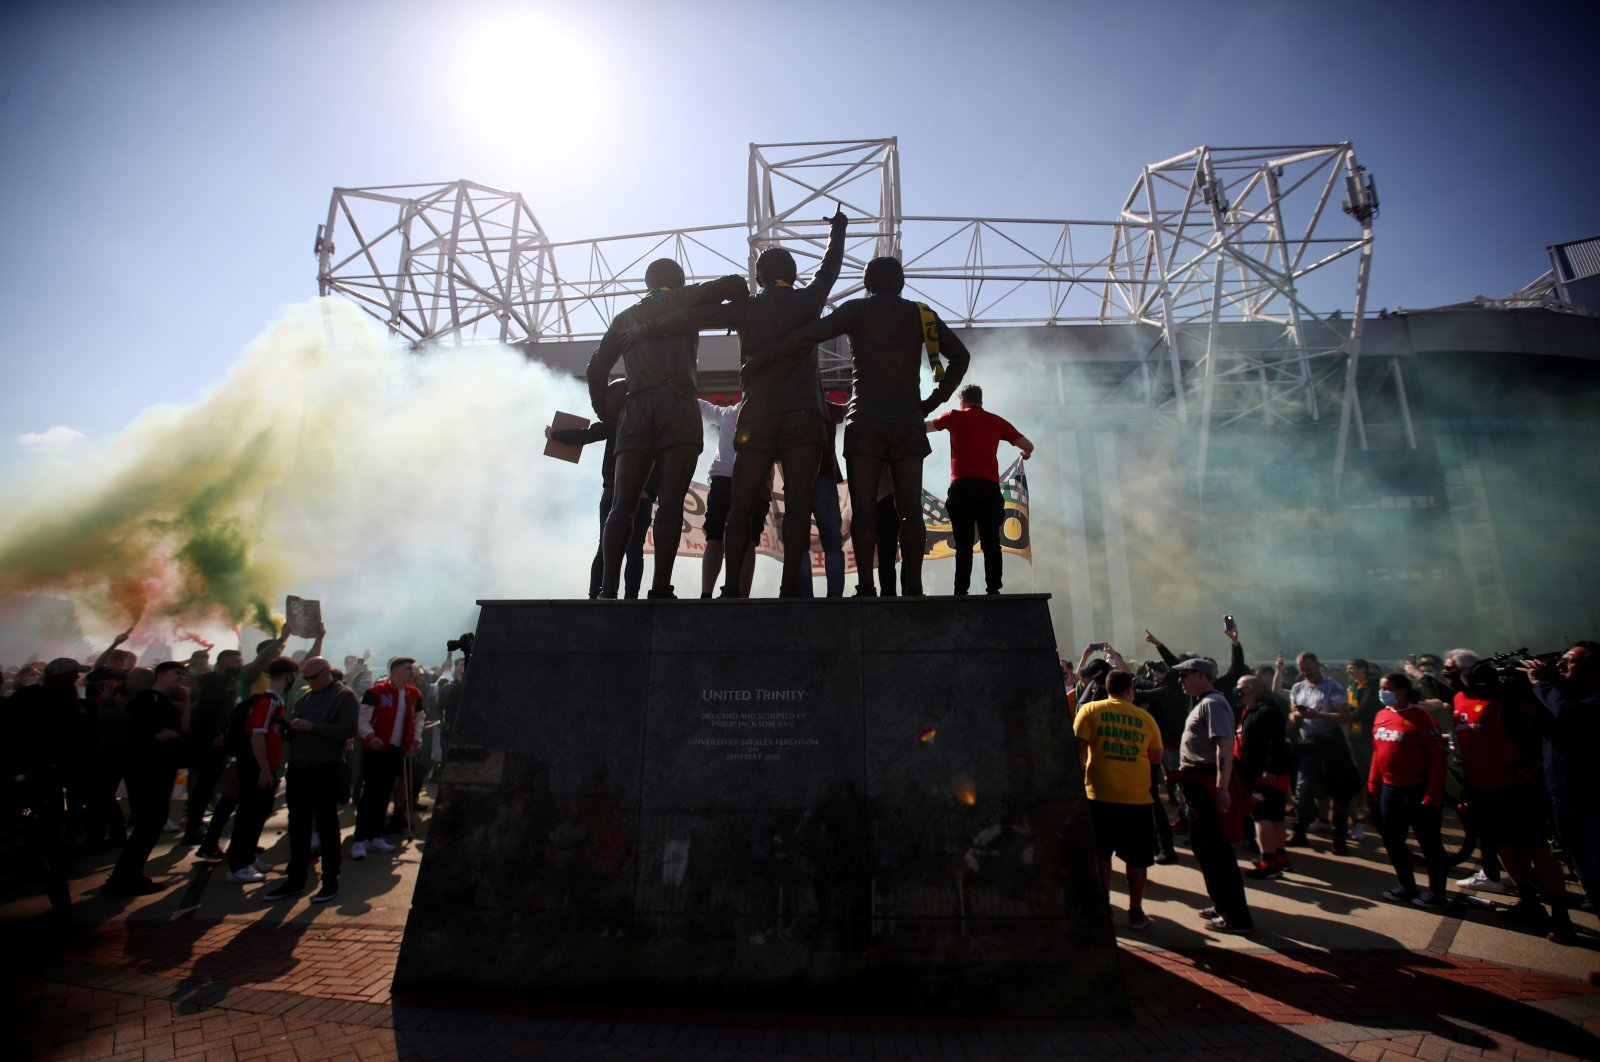 Manchester United fans protest against owners after the failed launch of a European Super League, Old Trafford, Manchester, Britain, April 24, 2021.